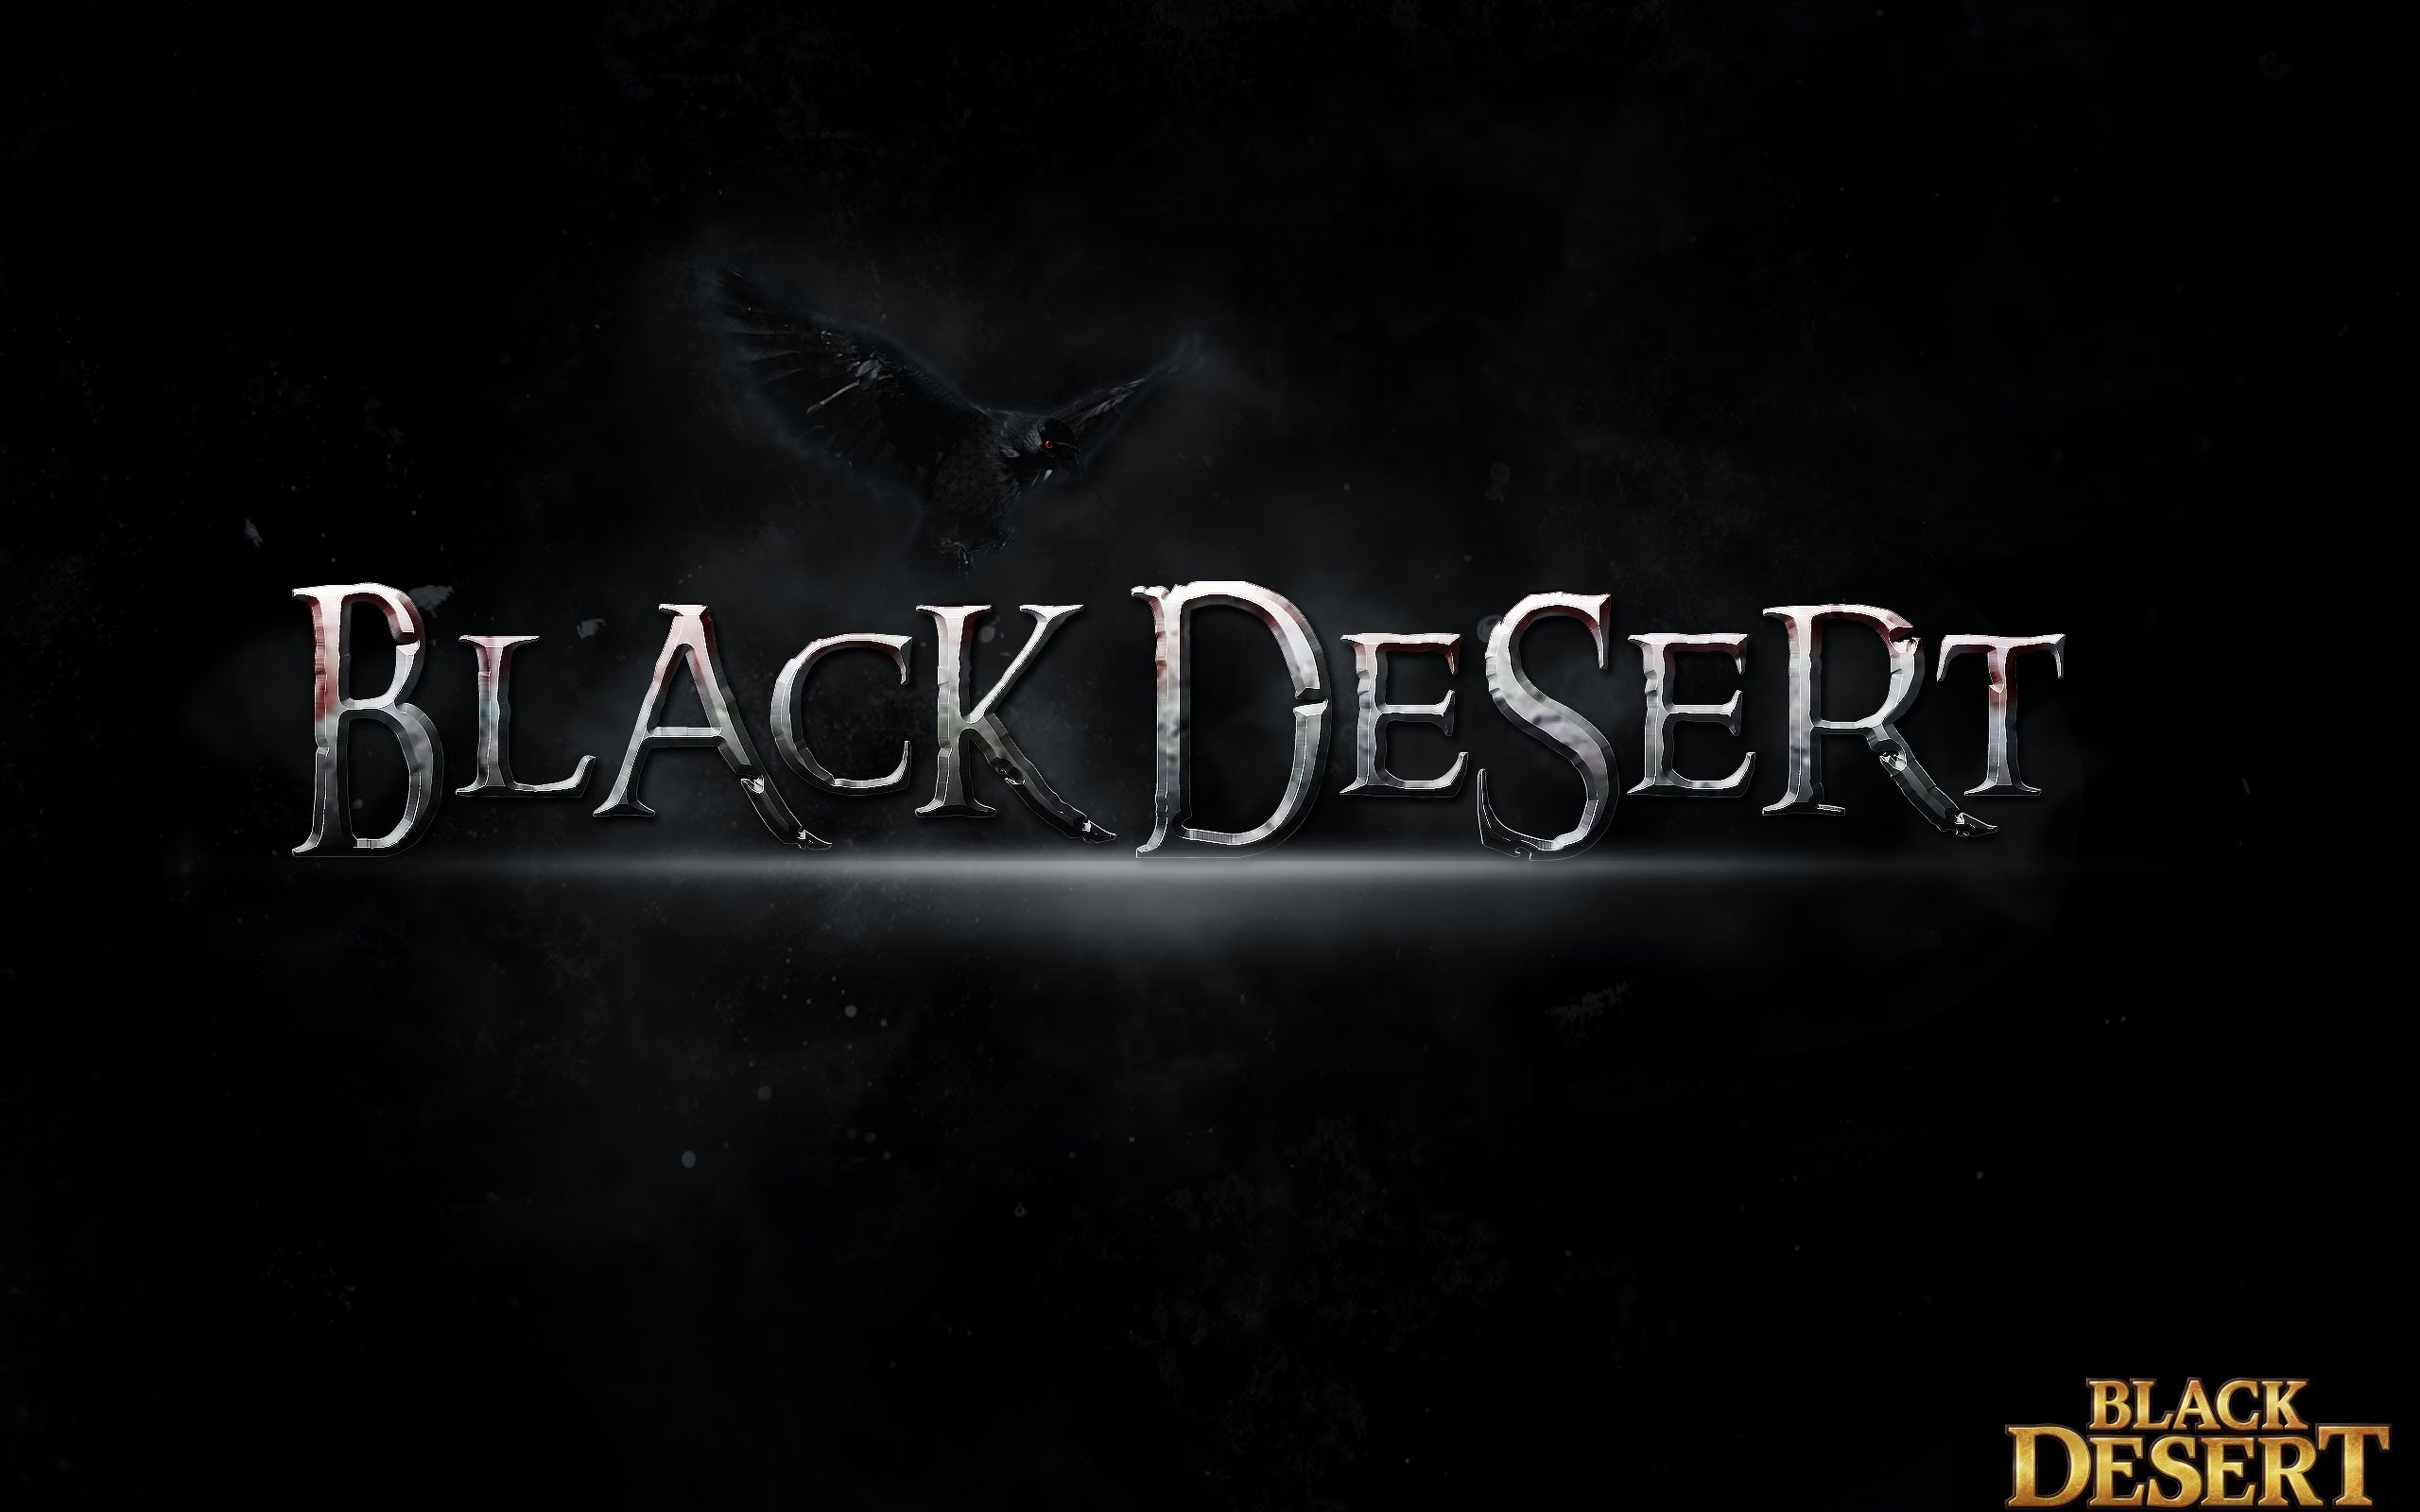 Black Desert HD Backgrounds